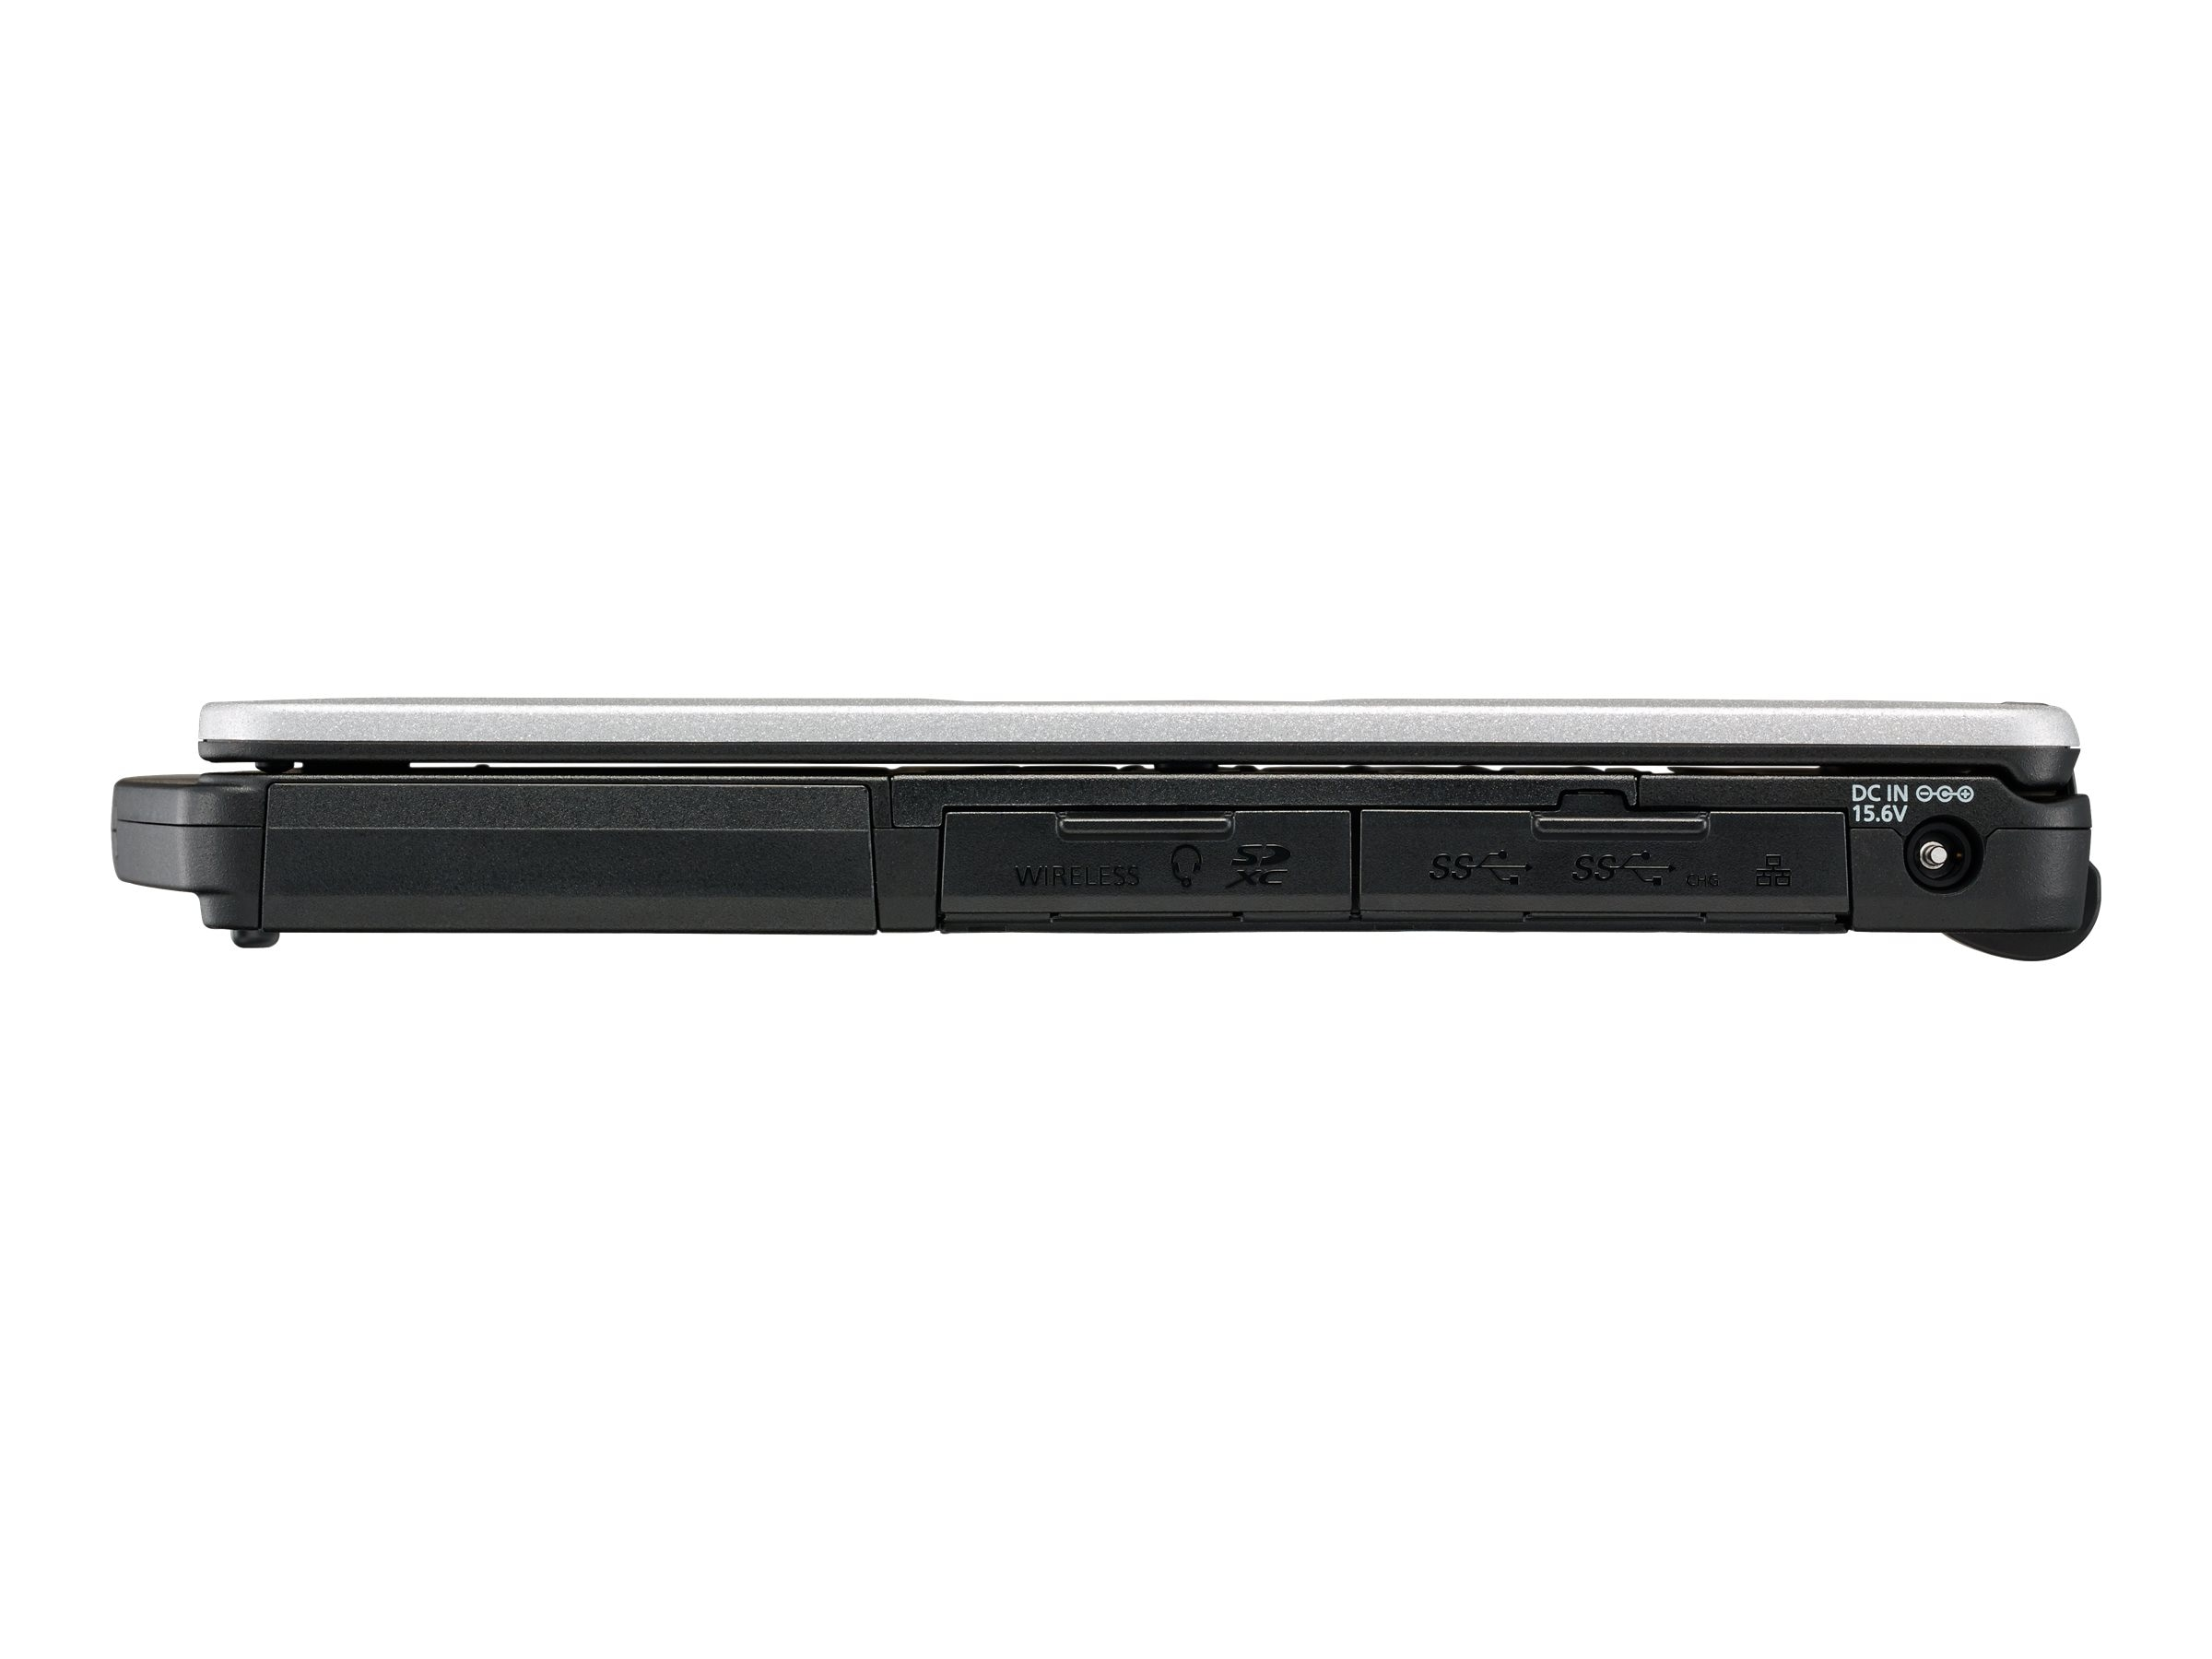 Panasonic Toughbook 54 2.4GHz Core i5 14in display, CF-54F1529VM